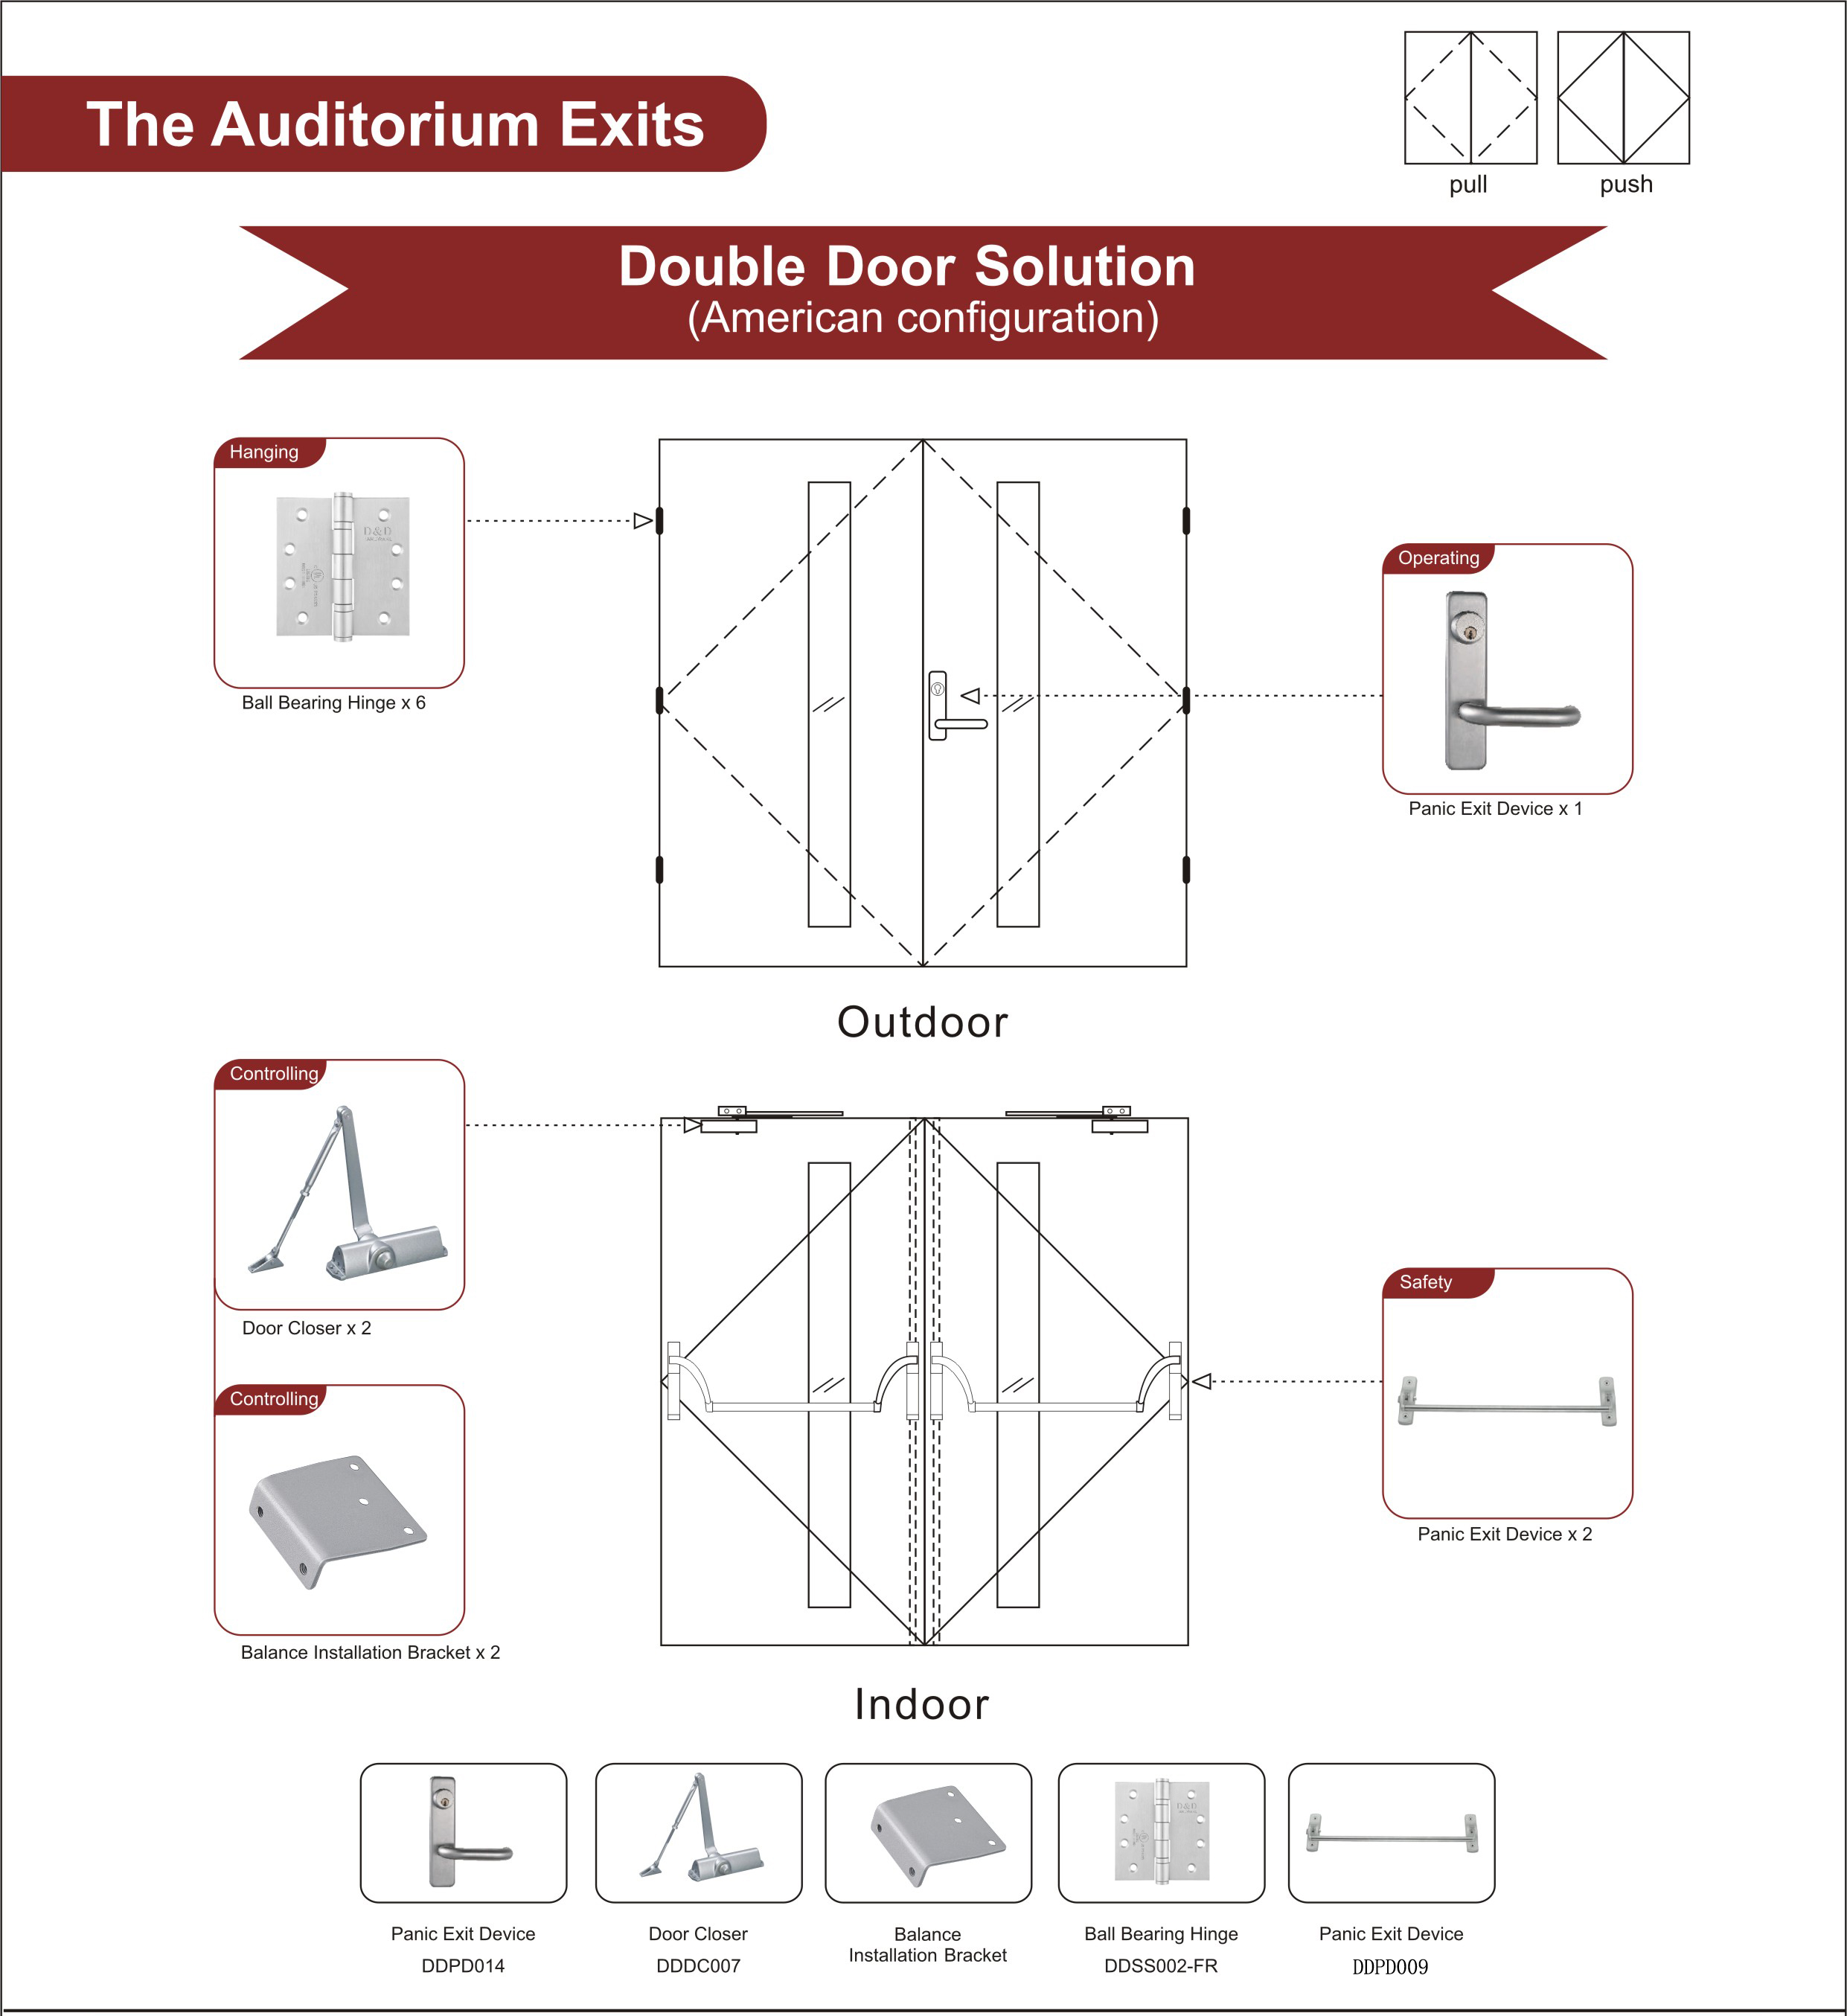 Fire Rated Wooden Door Hardware For The Auditorium Exits Double Door